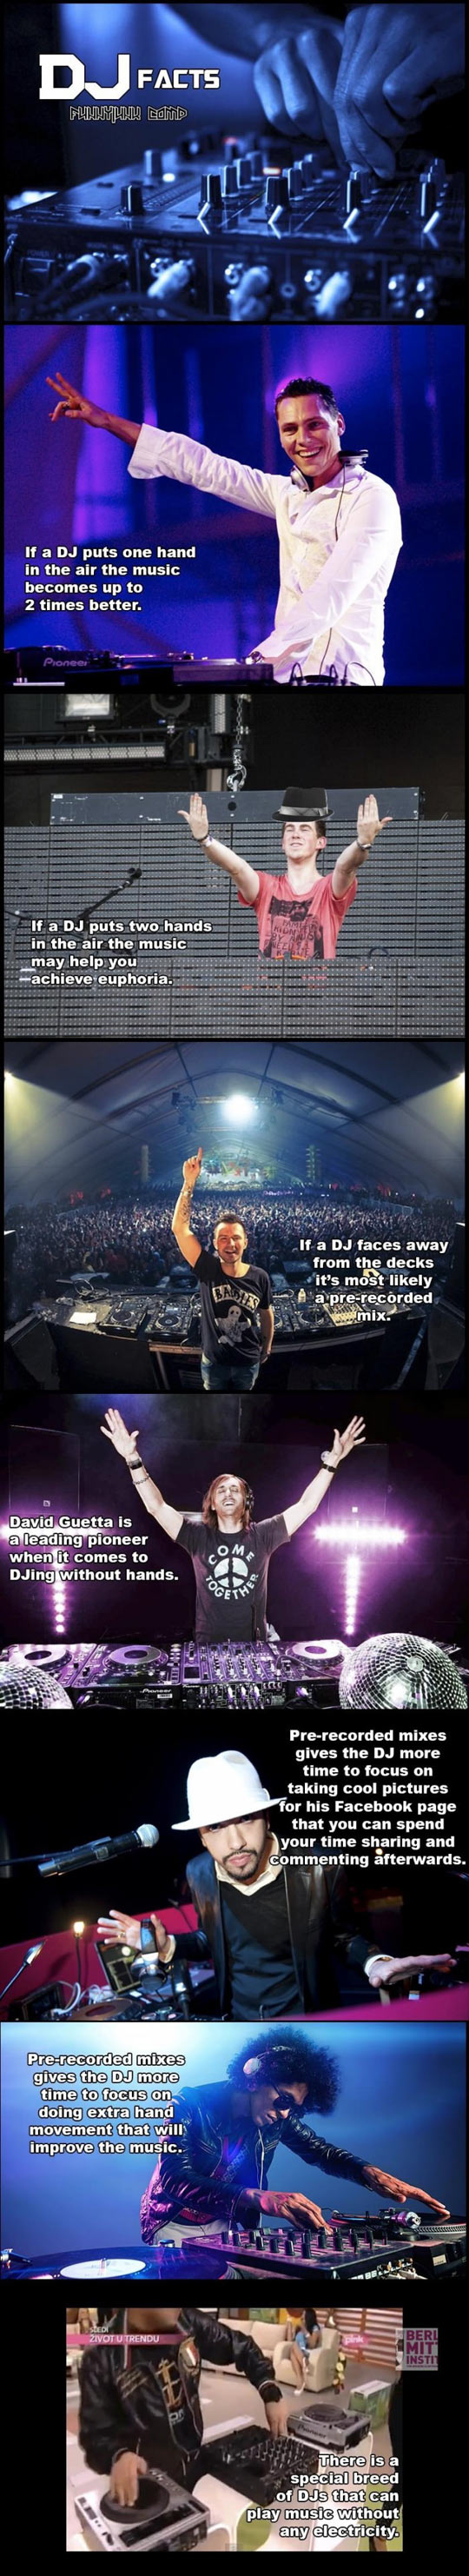 funny-picture-Dj-facts-hands-air